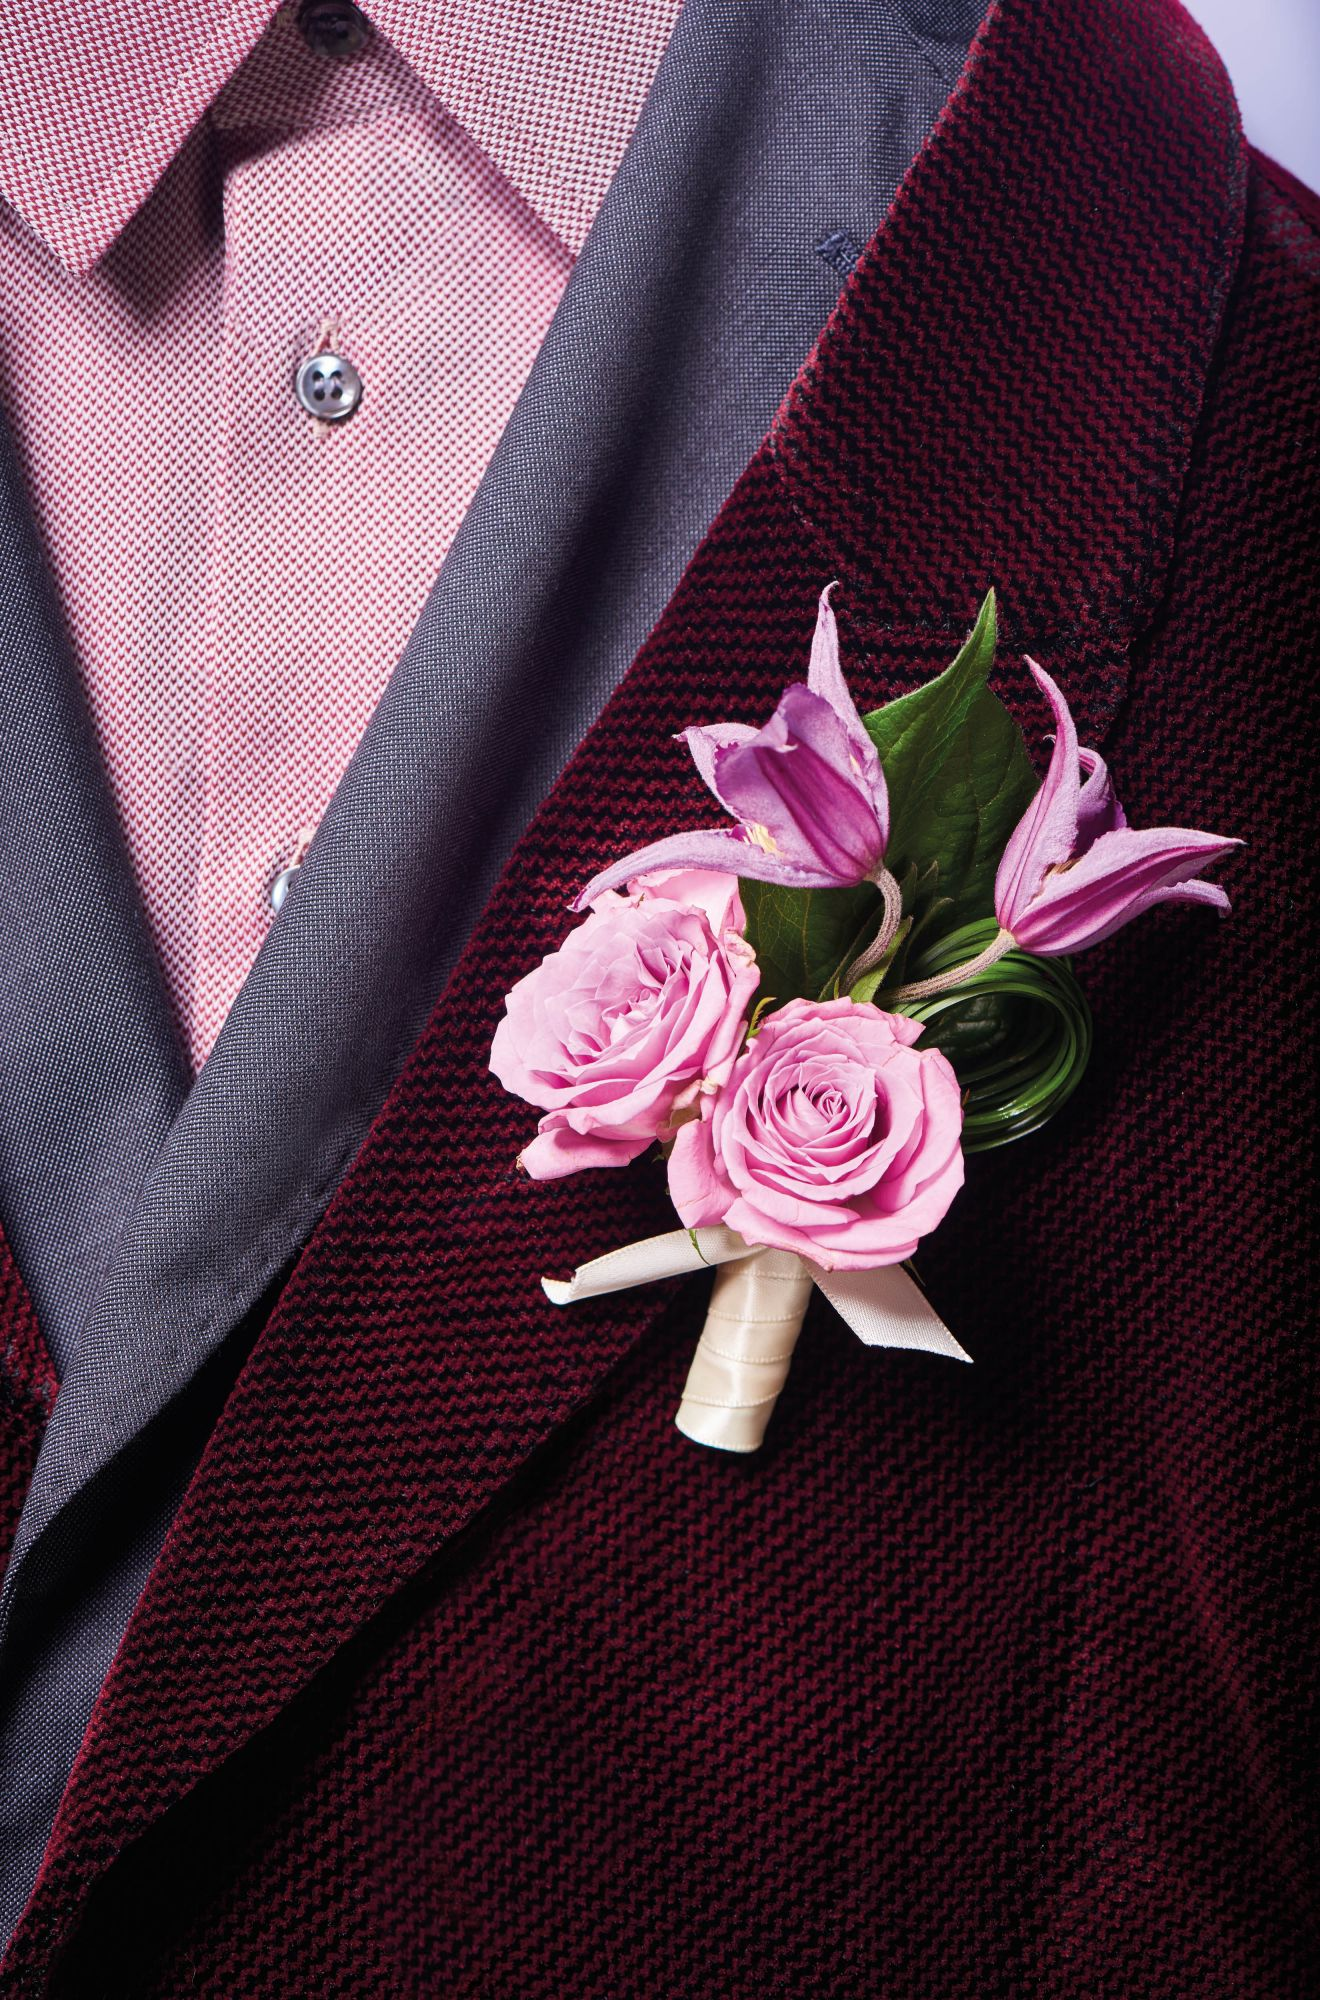 Boutonnière of clematis and roses by Armani/Fiori; shirt and jackets by Giorgio Armani